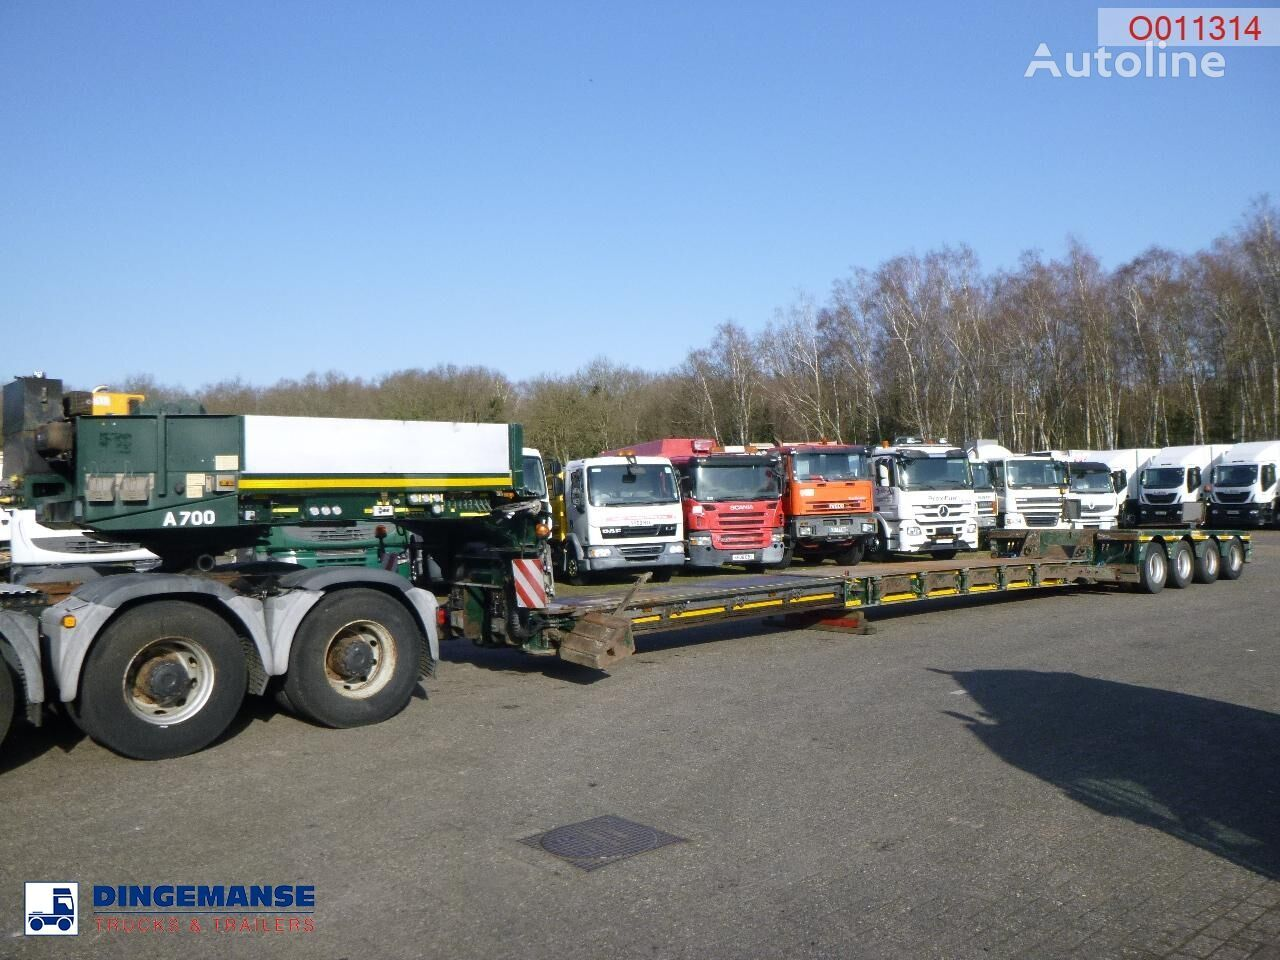 FAYMONVILLE 4-axle lowbed trailer STBZ-6VA / 89 t / extendable 11.7 m low bed semi-trailer